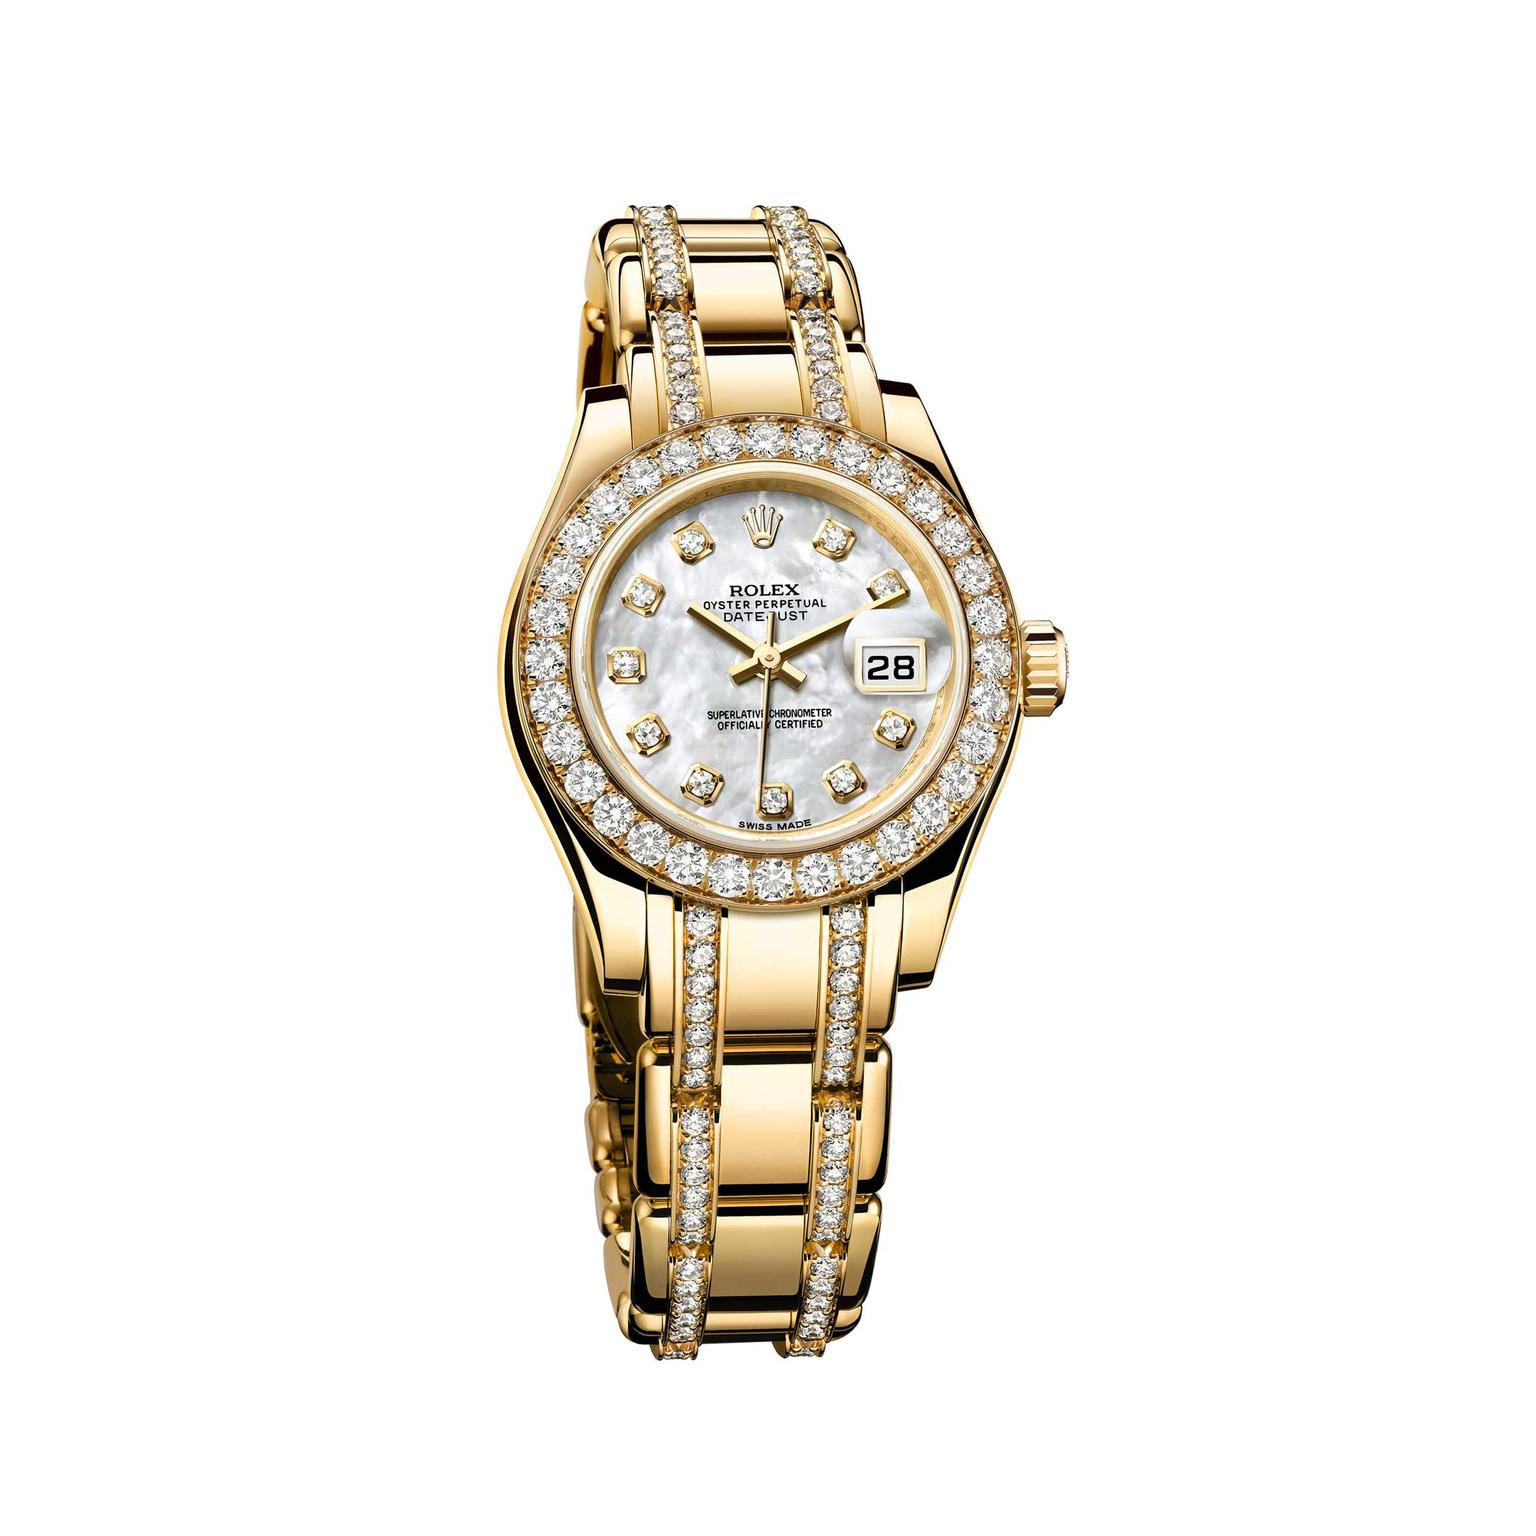 Rolex Lady Datejust Pearlmaster watch